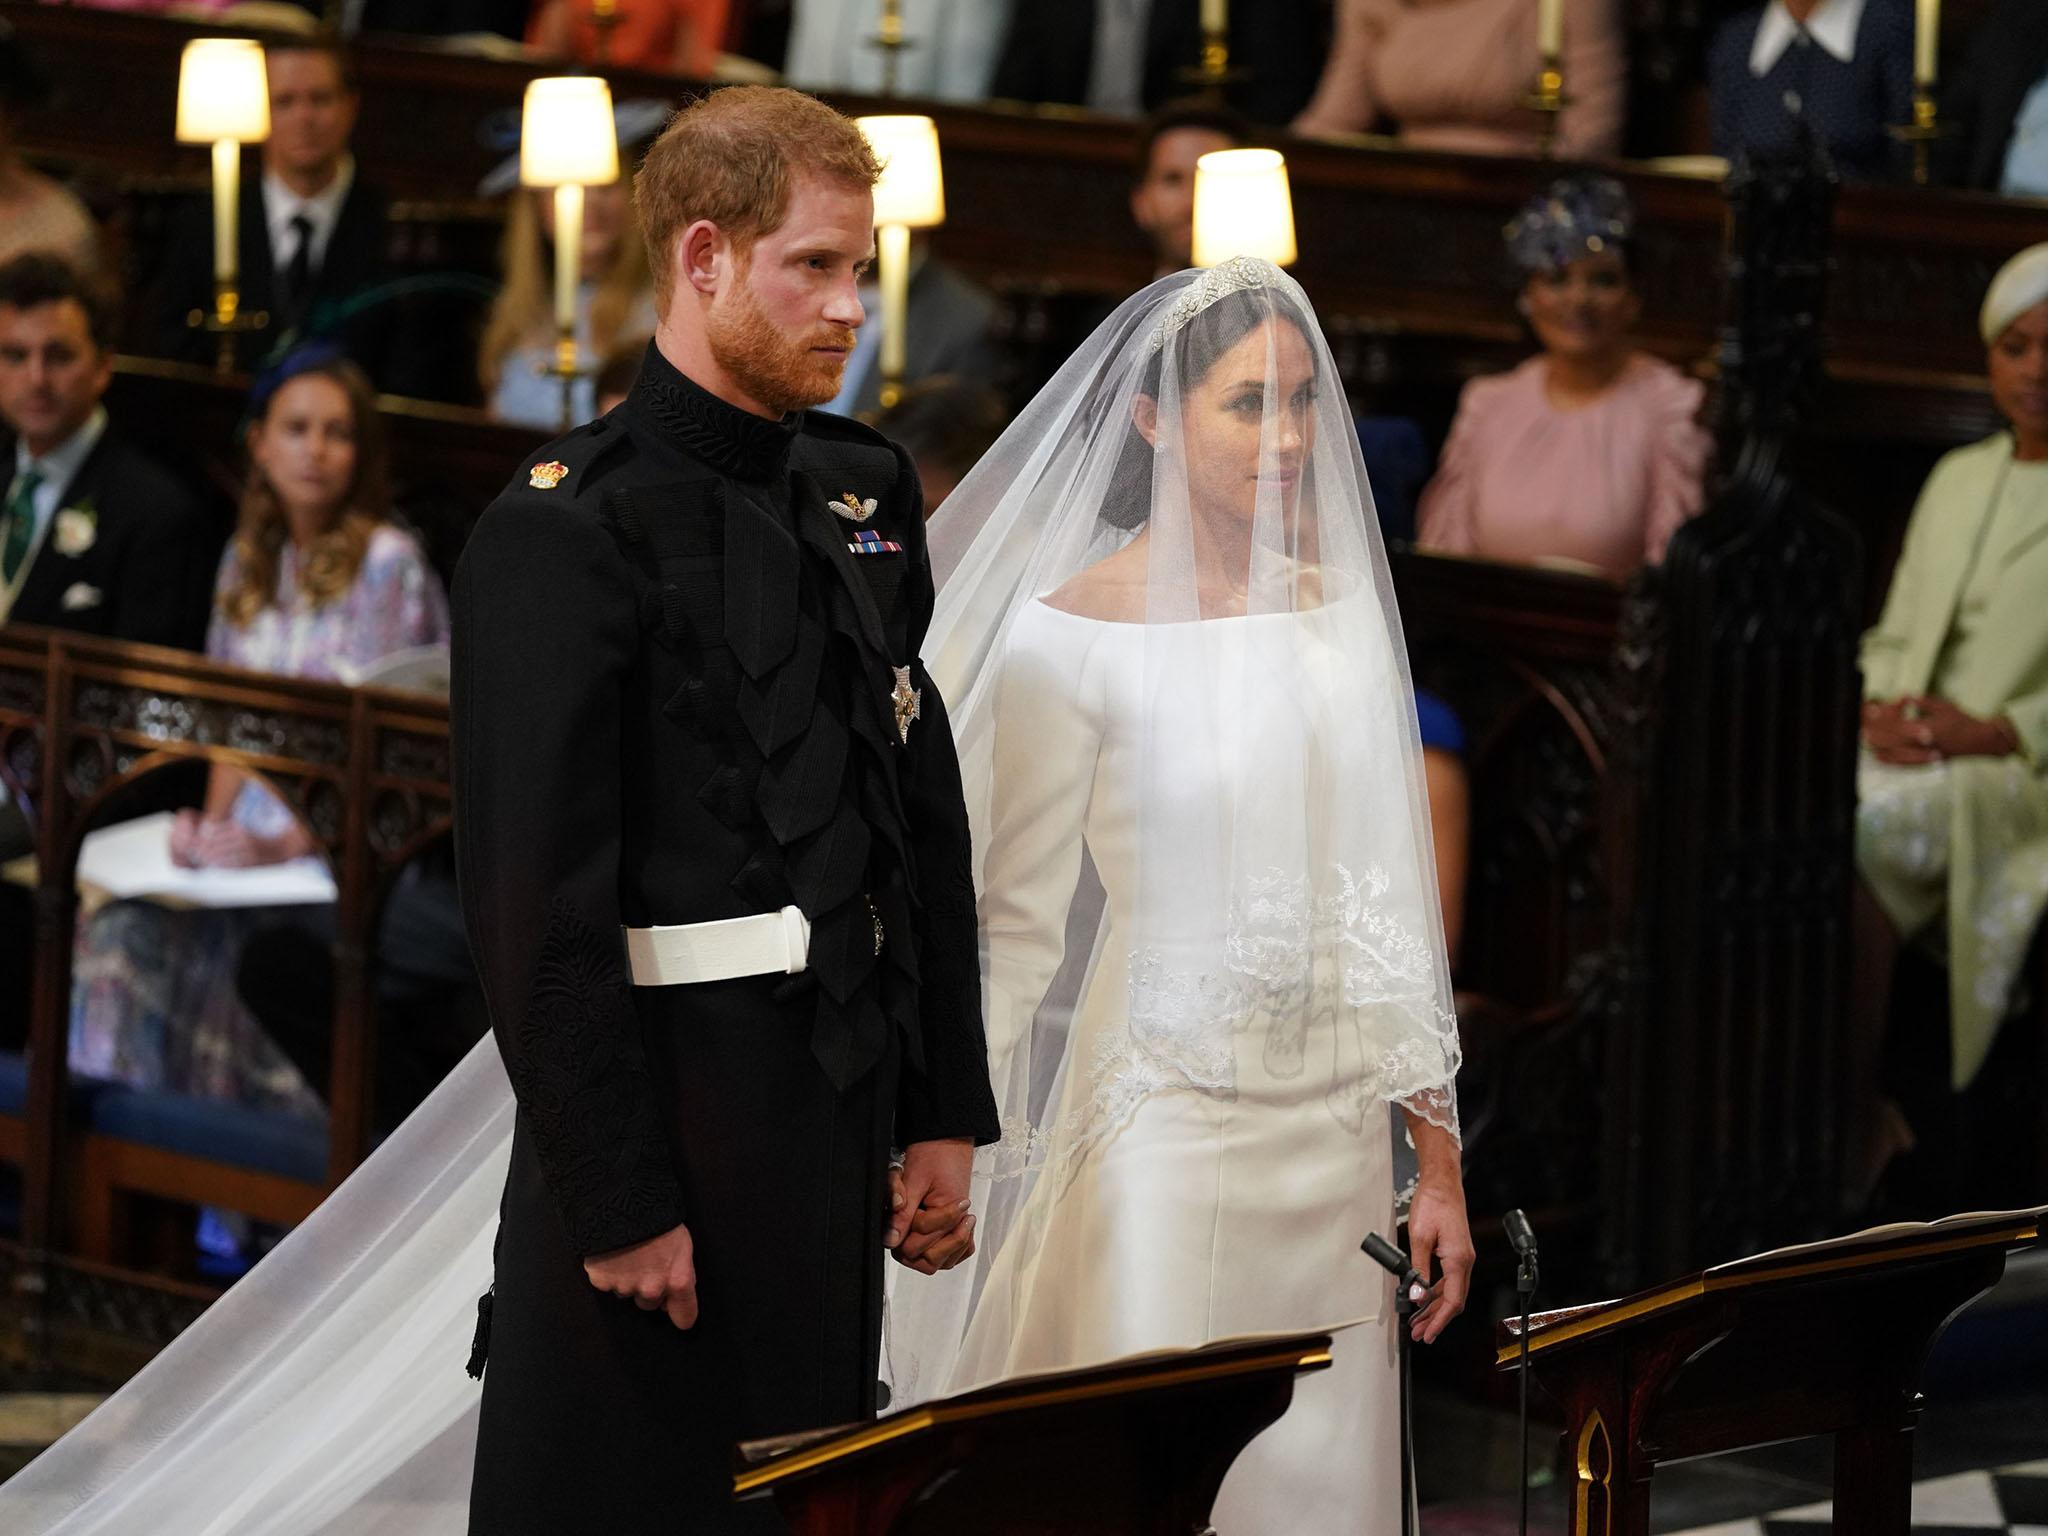 Royal Wedding LIVE: Meghan Markle's Givenchy Dress And